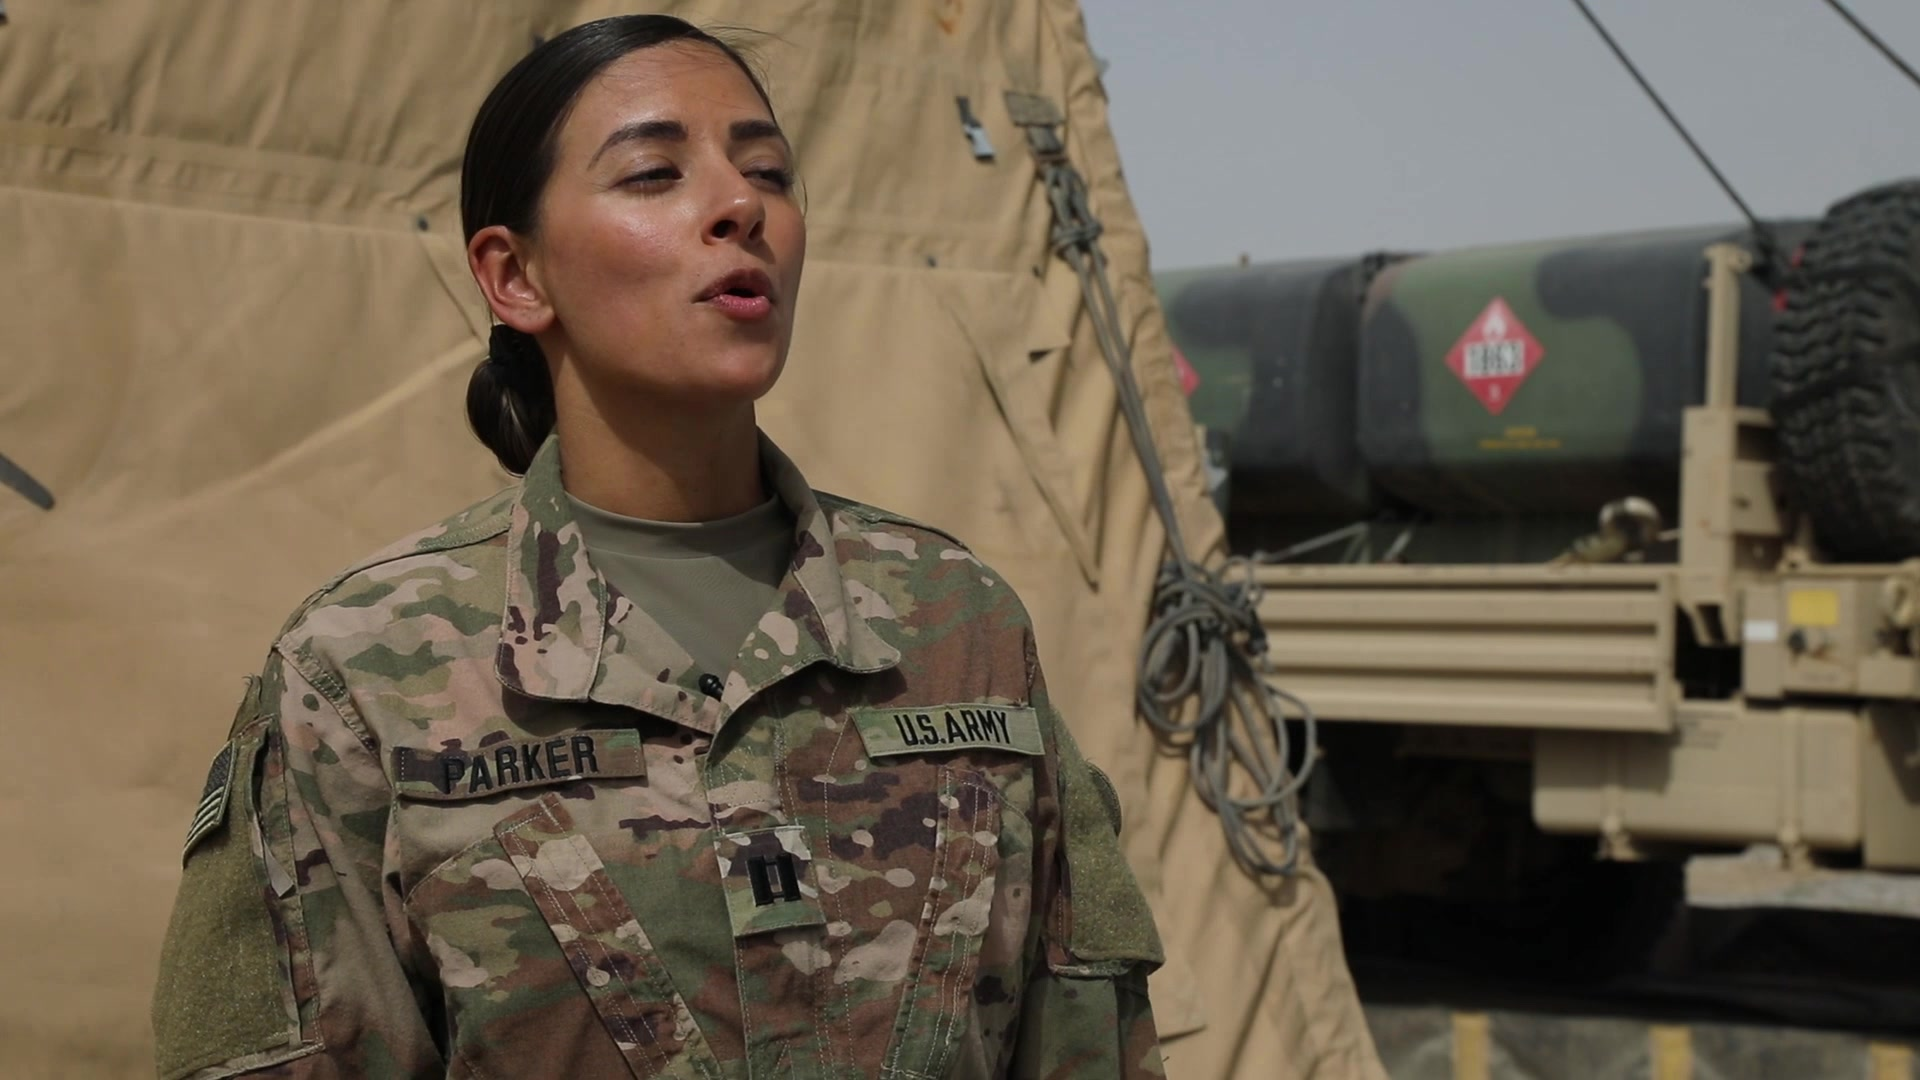 Capt. Stephanie Parker serves as the G-1 Deputy Chief for the 1st Theater Sustainment Command at Camp Arifjan, Kuwait. This is her story about why she continues to serve as a U.S. Army Soldier. (U.S. Army Video by Staff Sgt. Neil McCabe, 1st TSC Public Affairs)